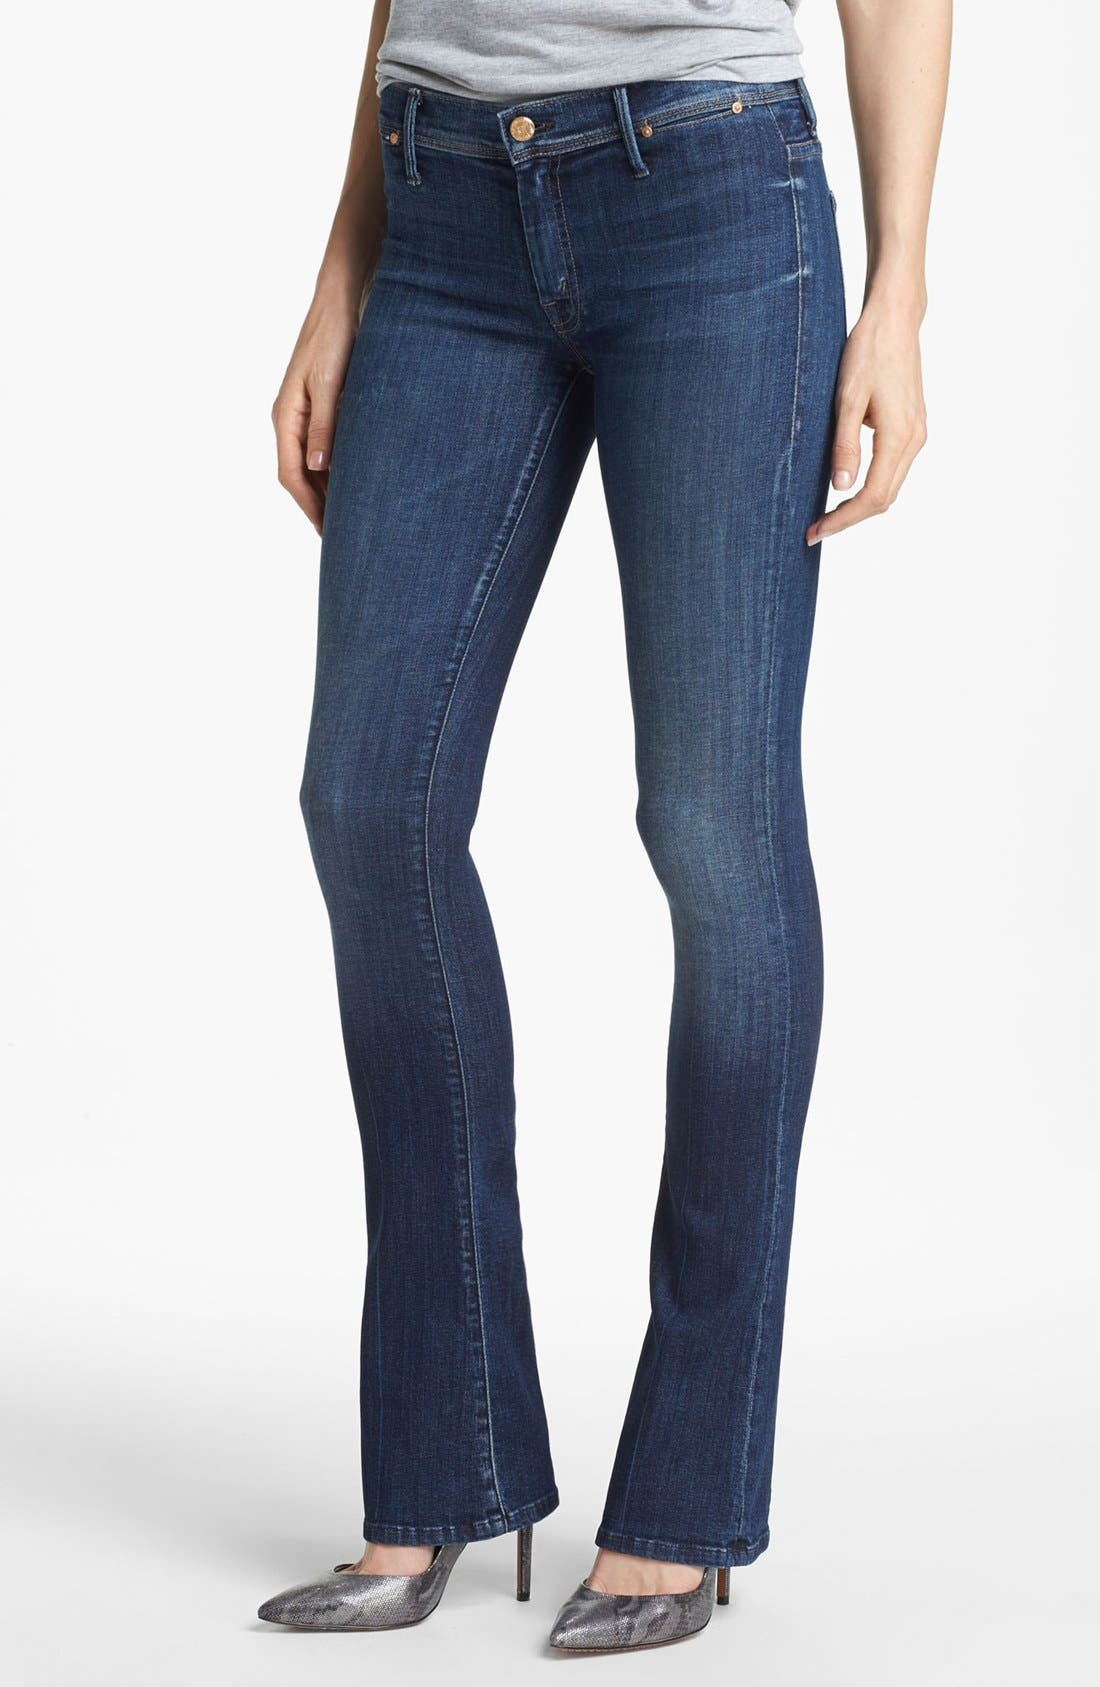 'The Daydreamer' Skinny Flare Leg Jeans,                             Main thumbnail 1, color,                             410